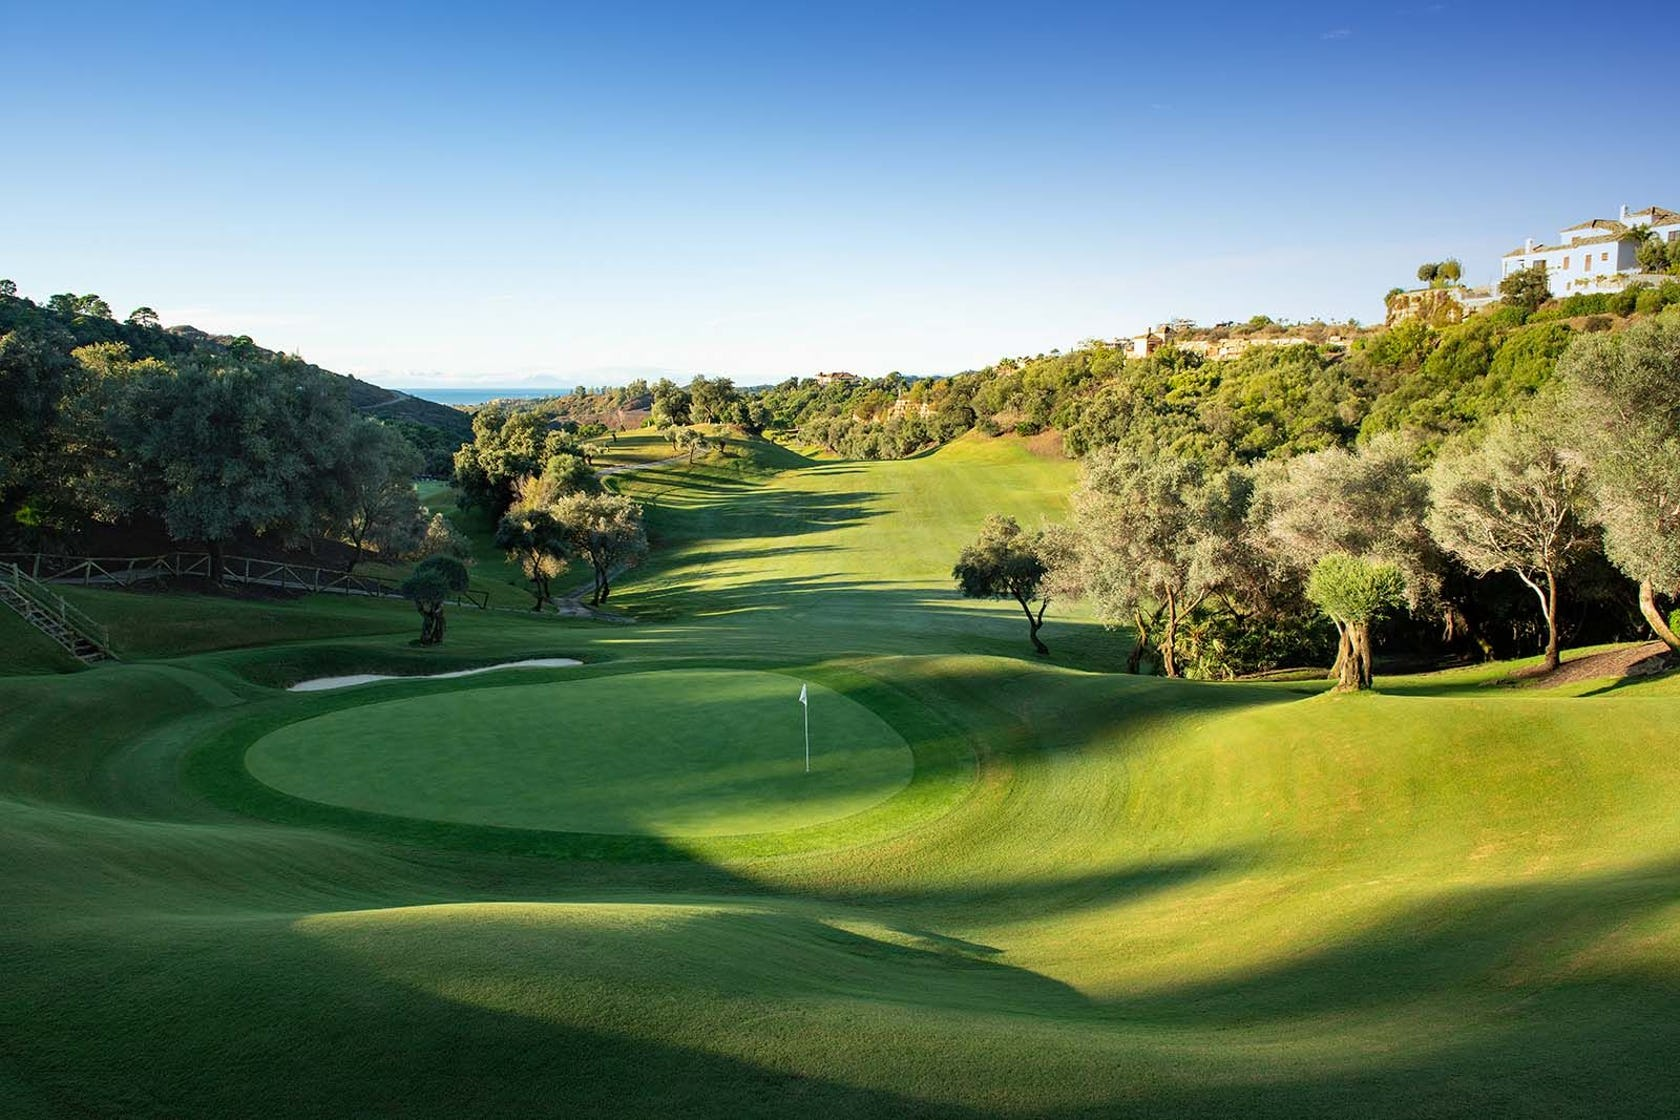 Marbella: one of the most beautiful golf destinations